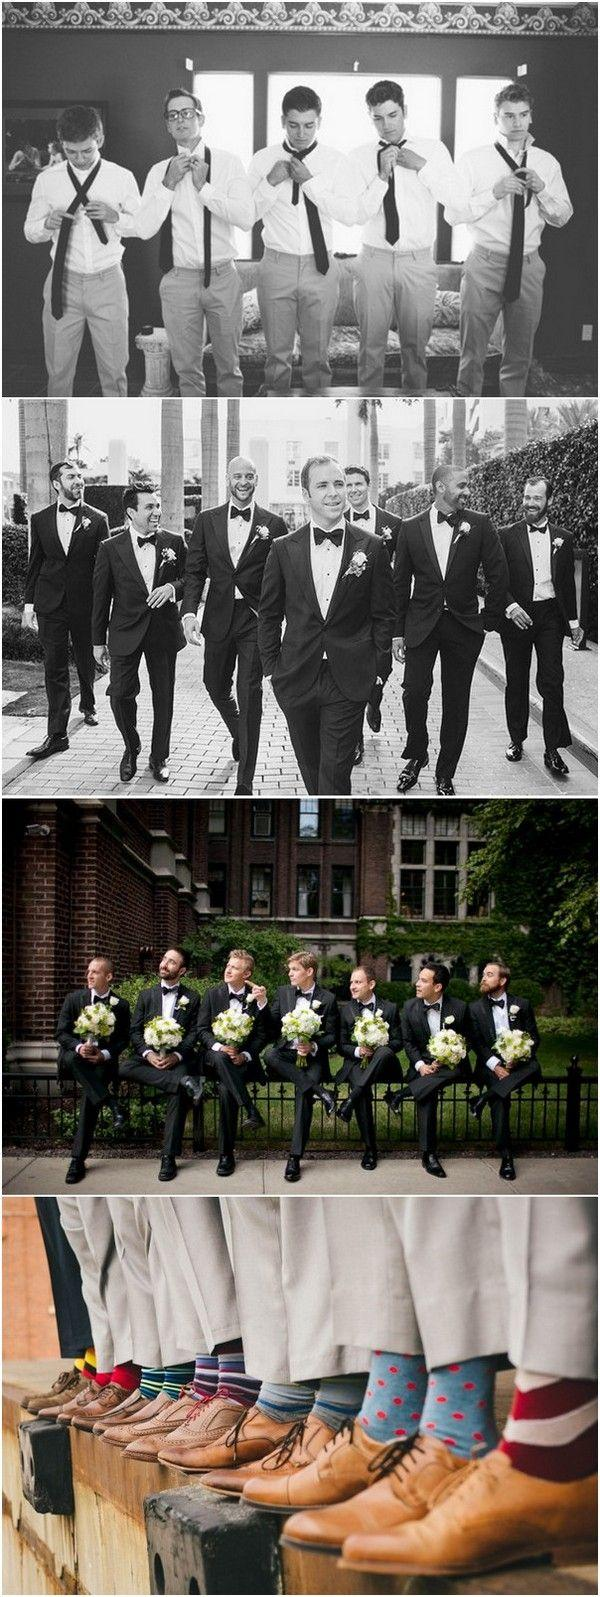 Wedding - 18 Awesome Wedding Photos With Groomsmen That You Can't Miss - Page 3 Of 3